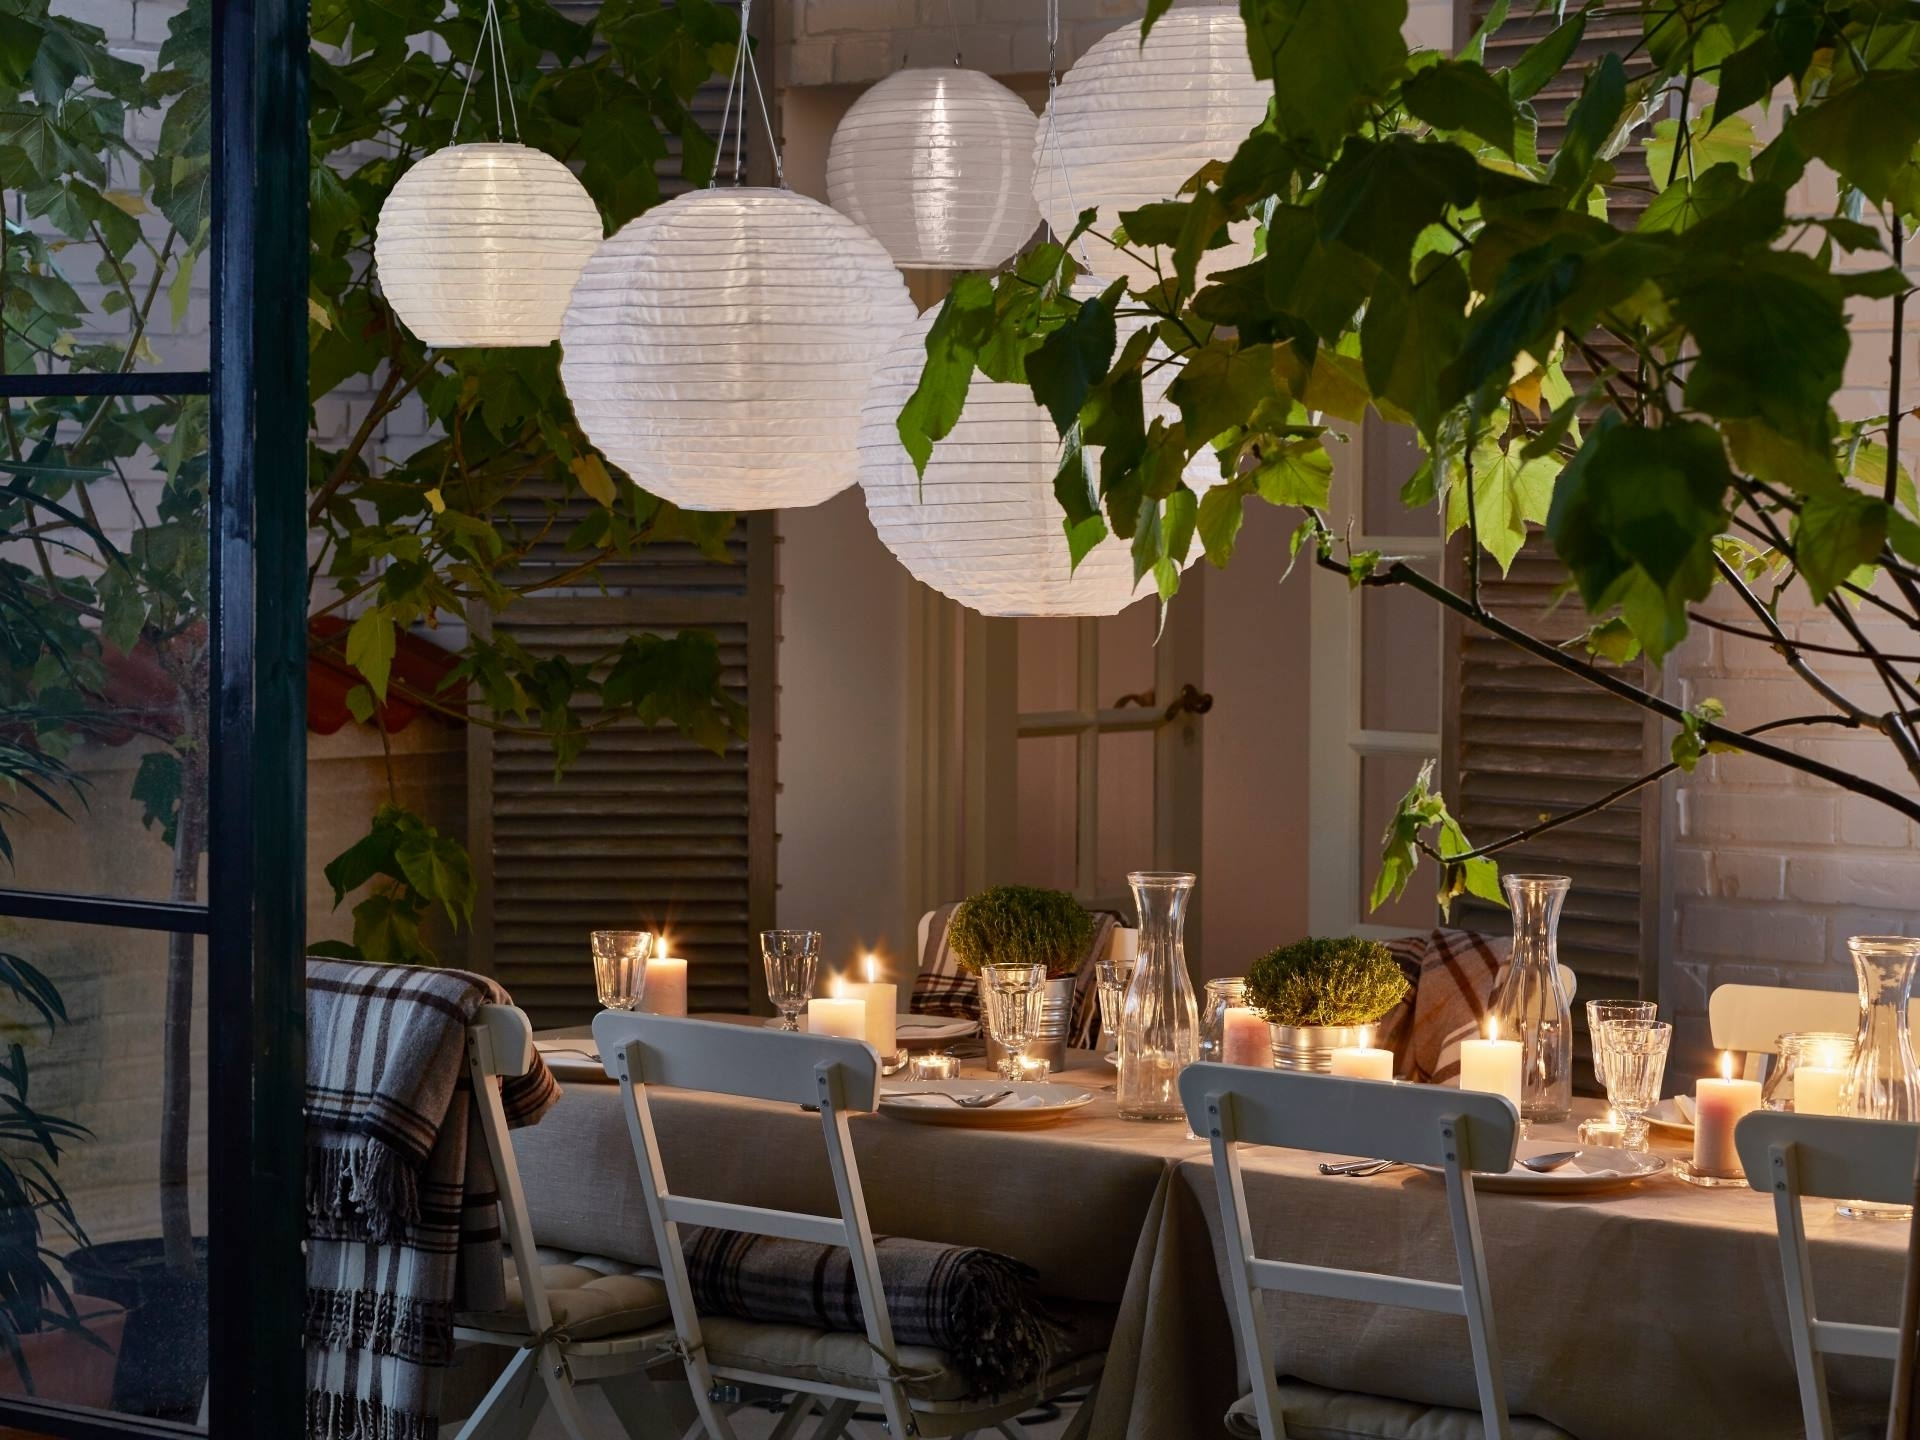 Well Known 10 Ways To Decorate With Paper Lanterns With Outdoor Dining Lanterns (View 18 of 20)